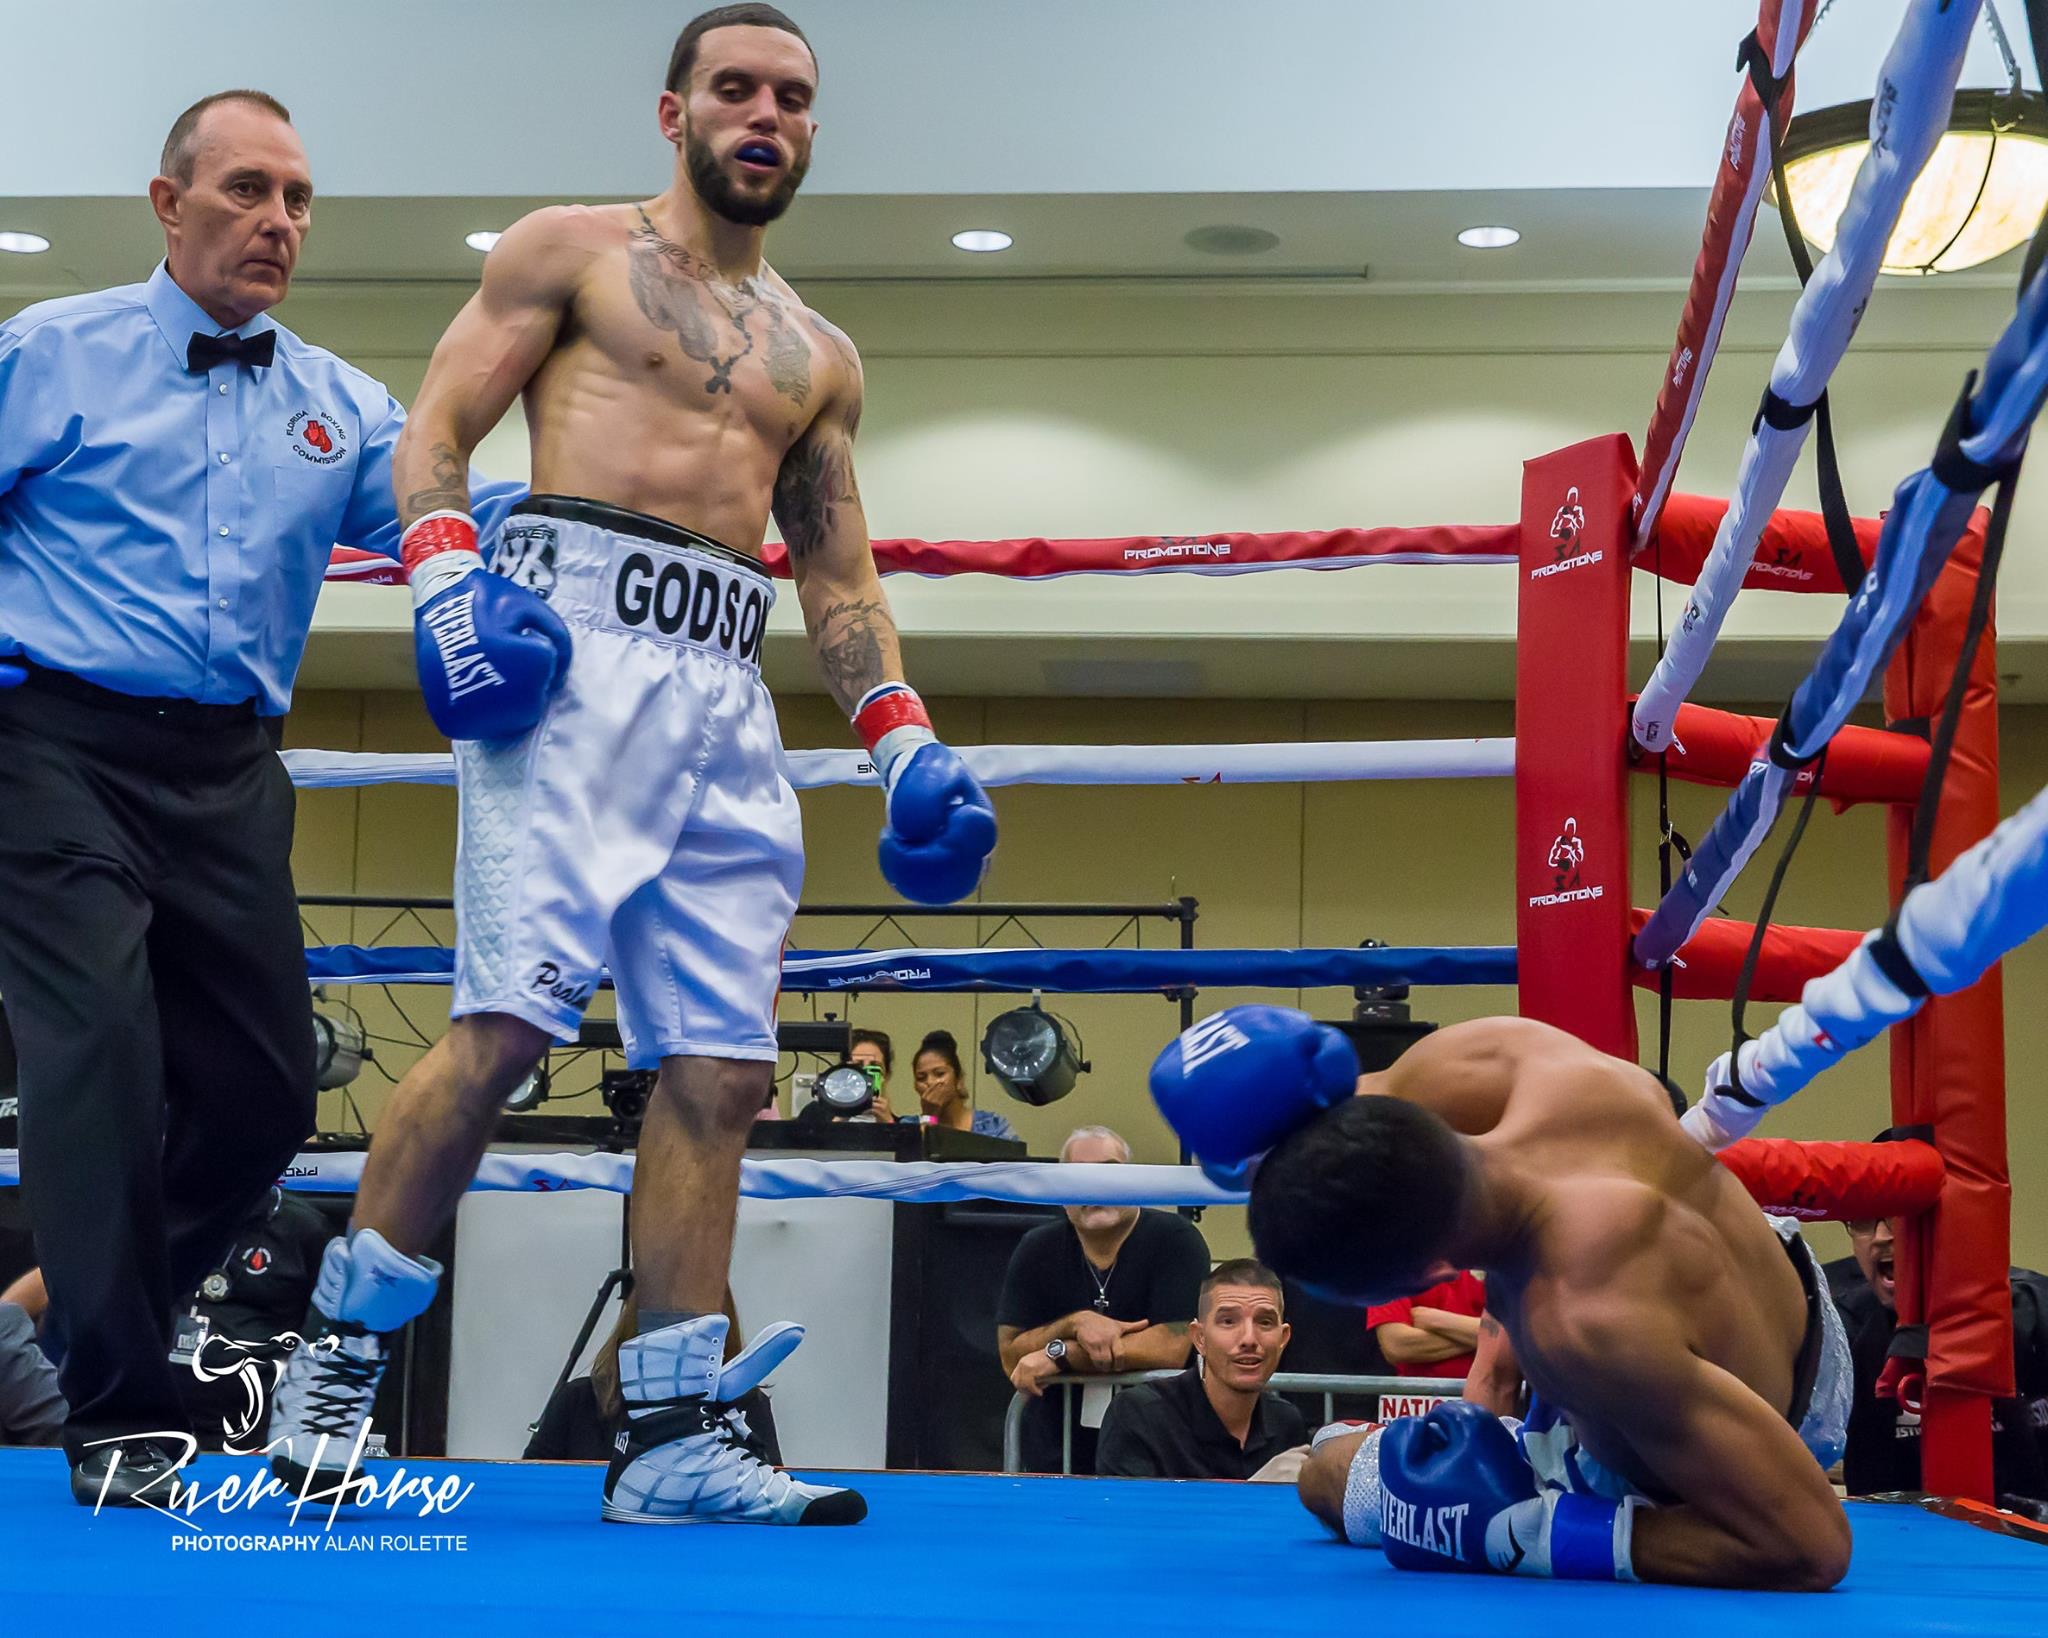 Dustin Arnold scores a knockdown on Evander Lamourt. Photo: Alan Rolette/RiverHorse Photography